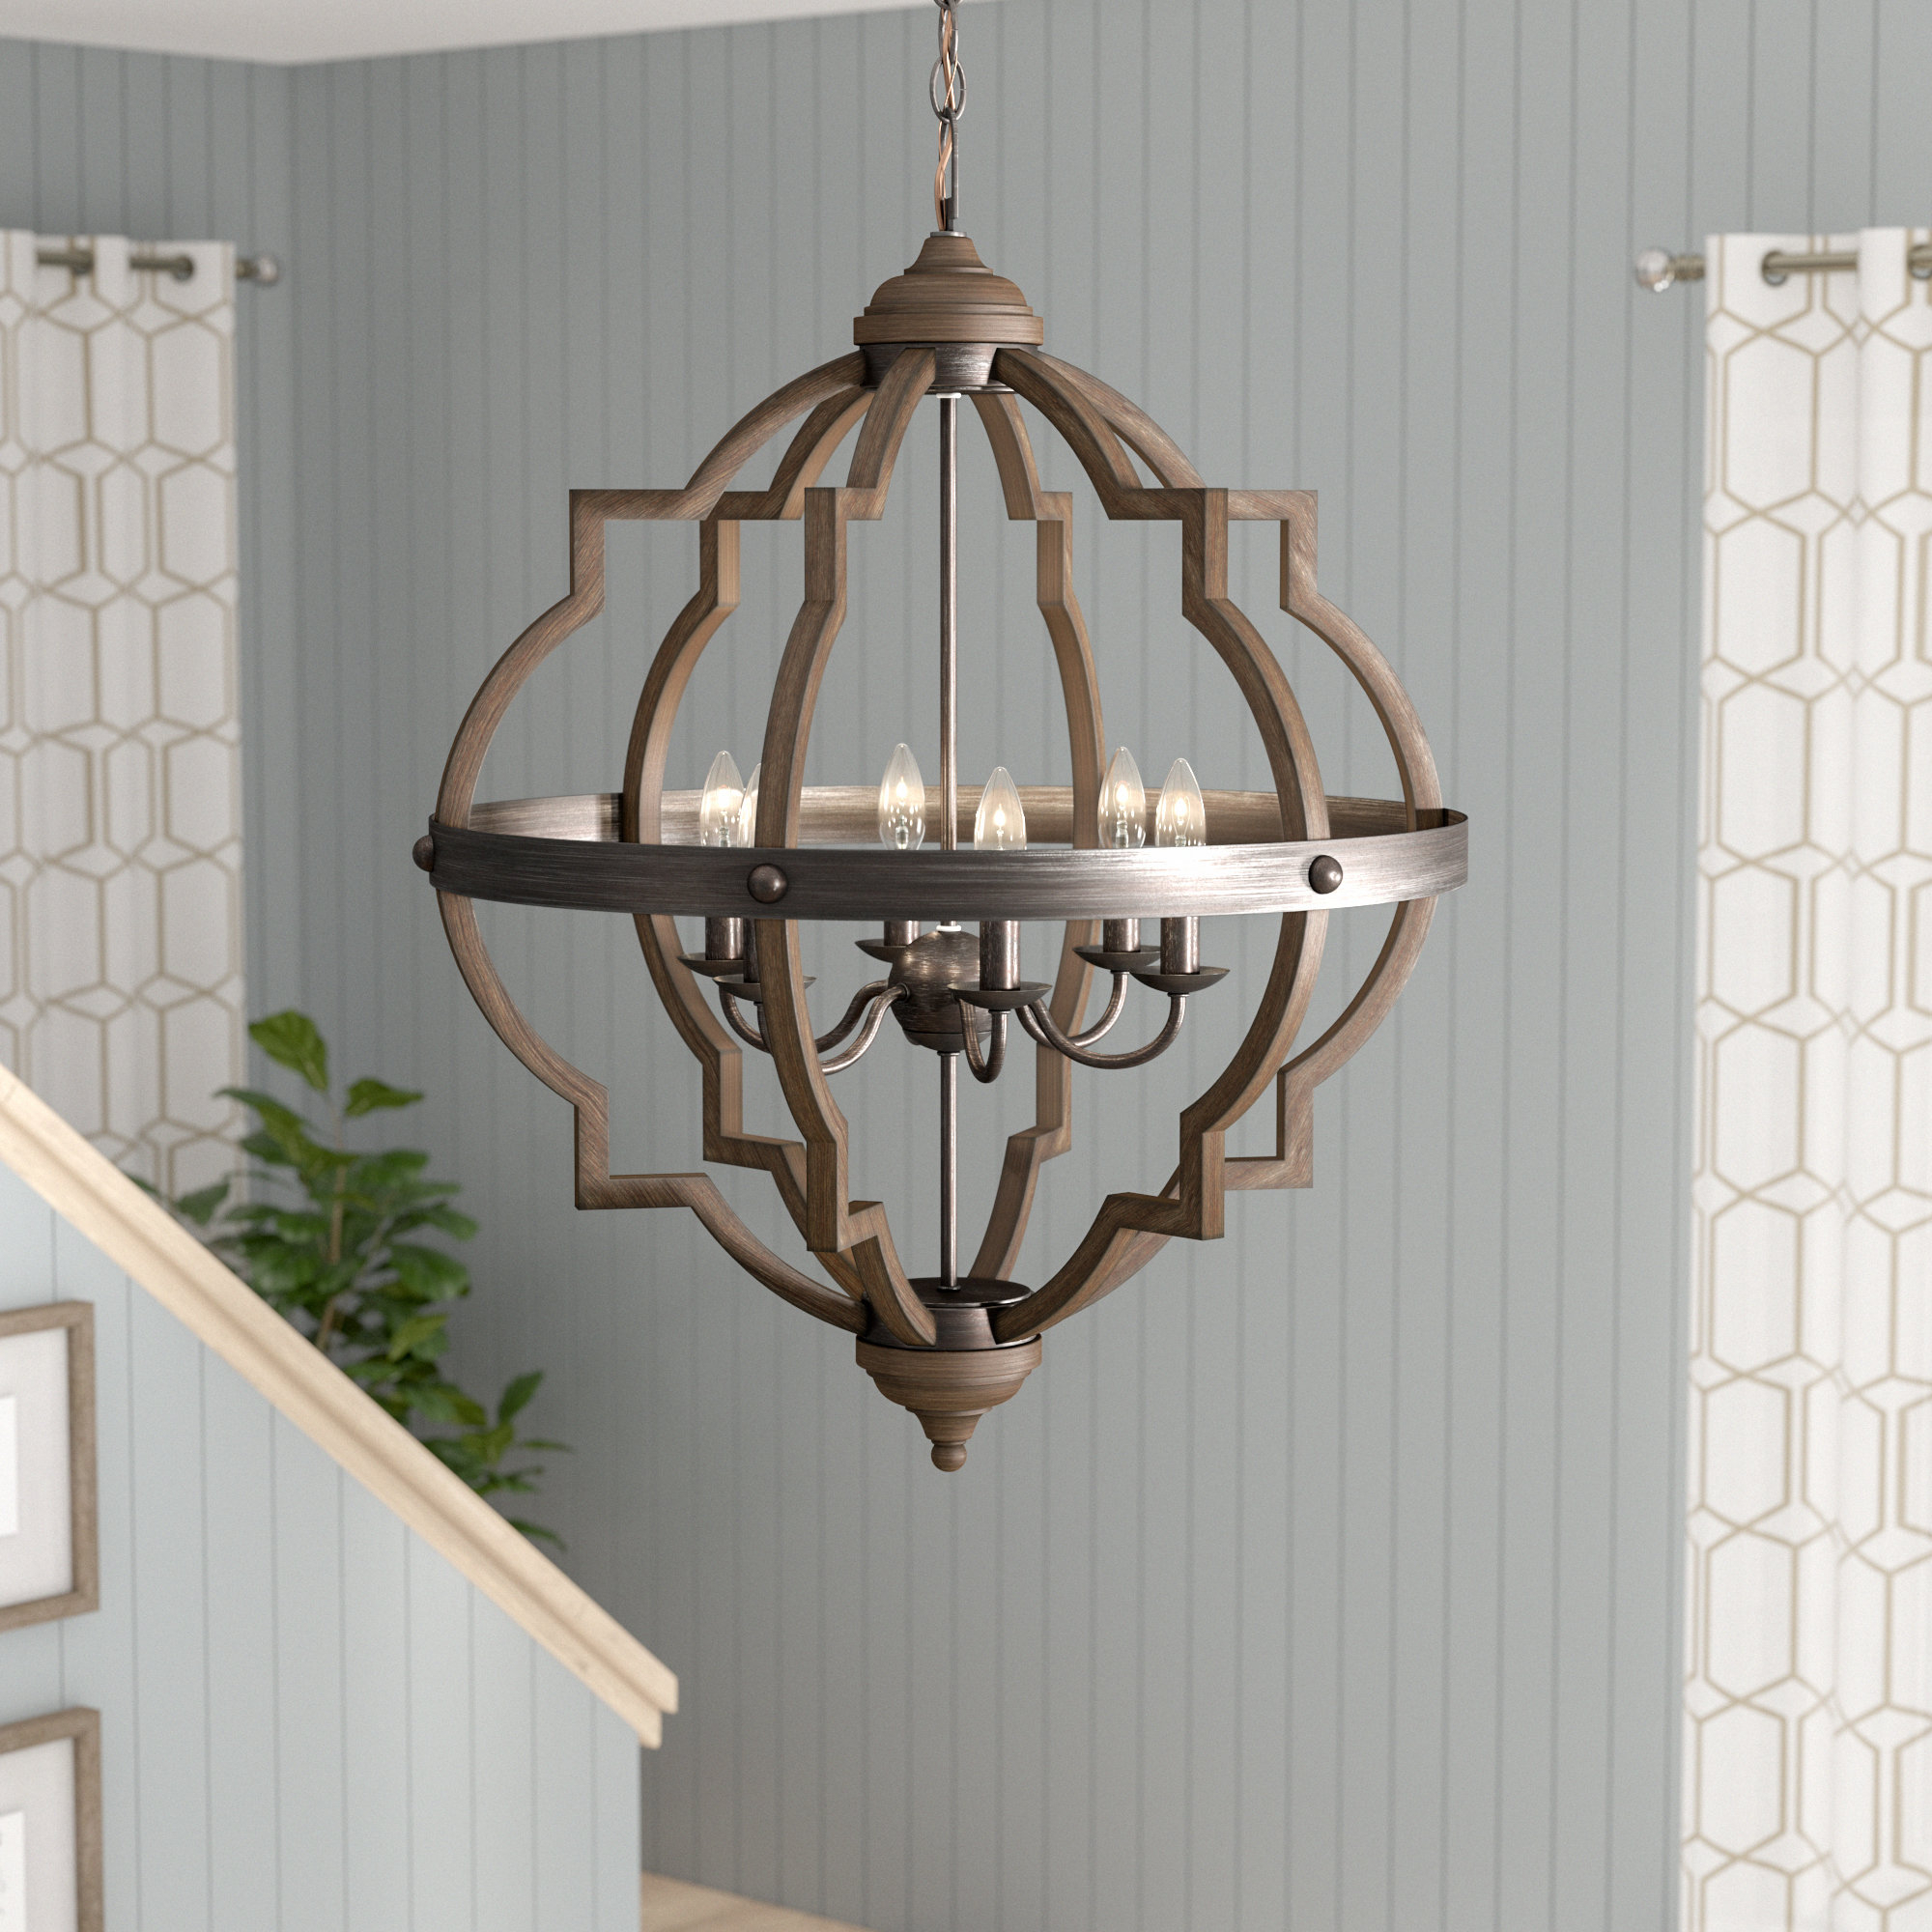 Bennington 6 Light Candle Style Chandelier For Preferred Bennington 4 Light Candle Style Chandeliers (View 5 of 20)